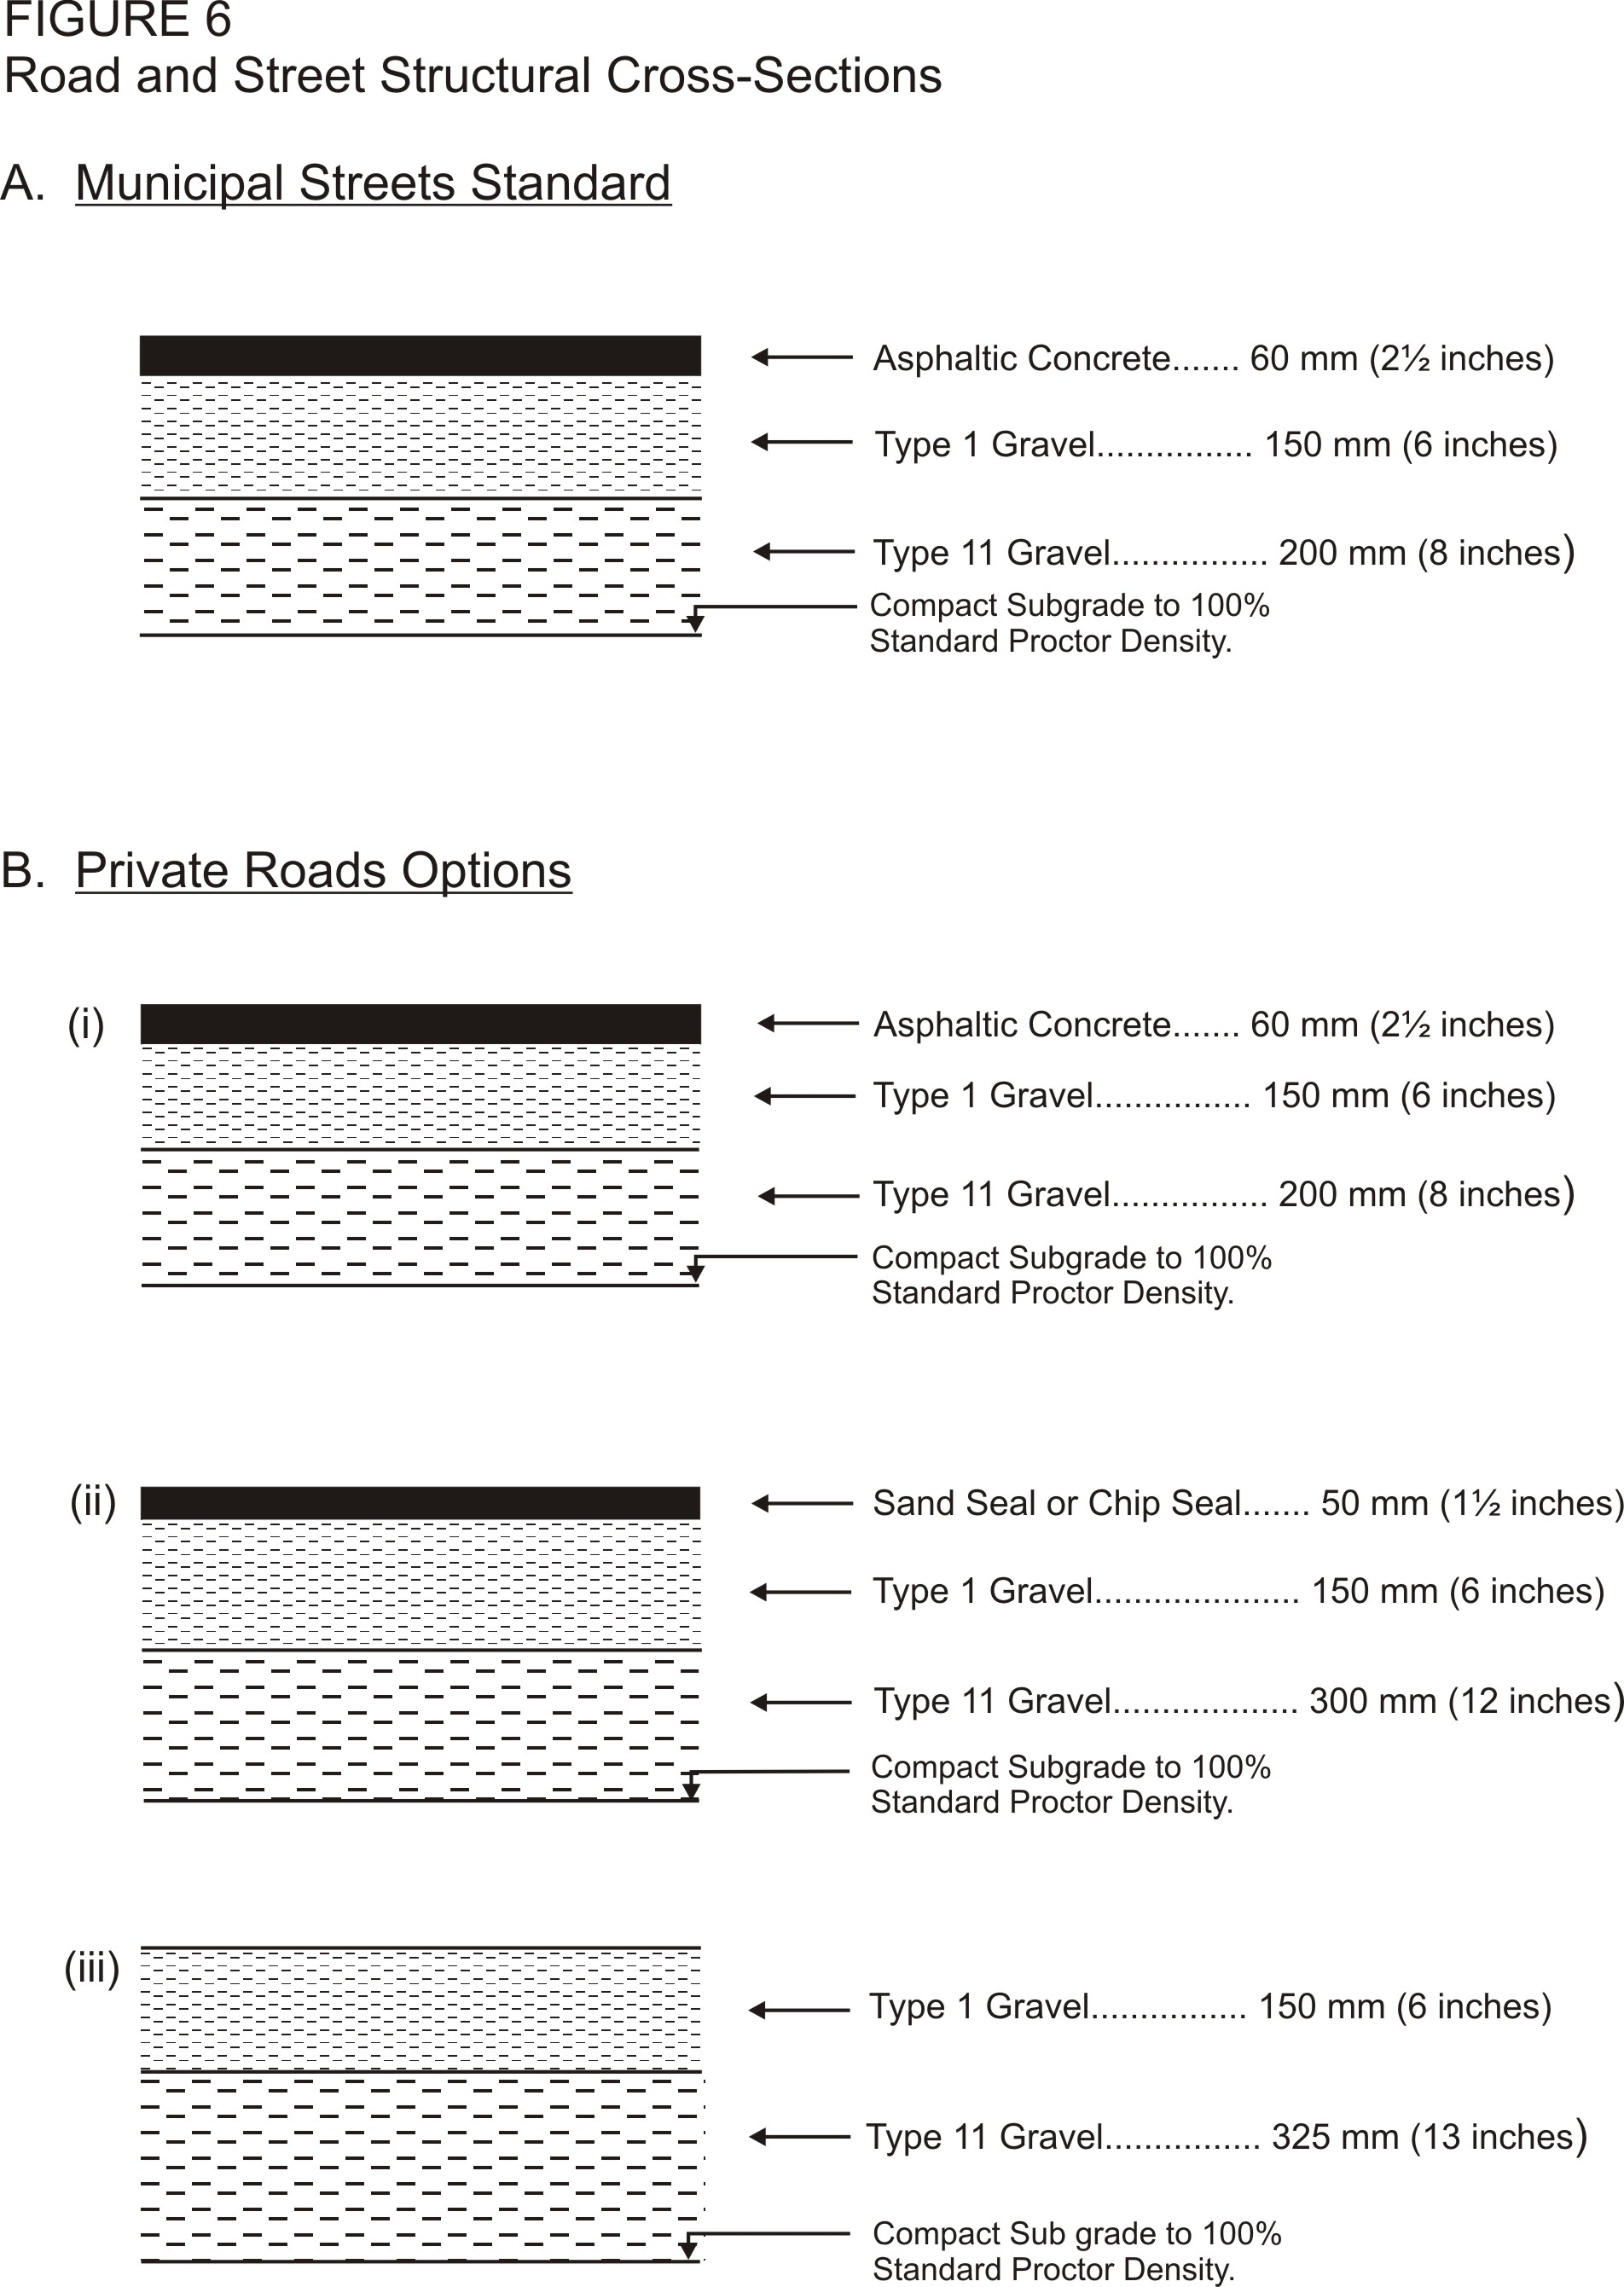 Road Standards_Cross-sections Fig 6